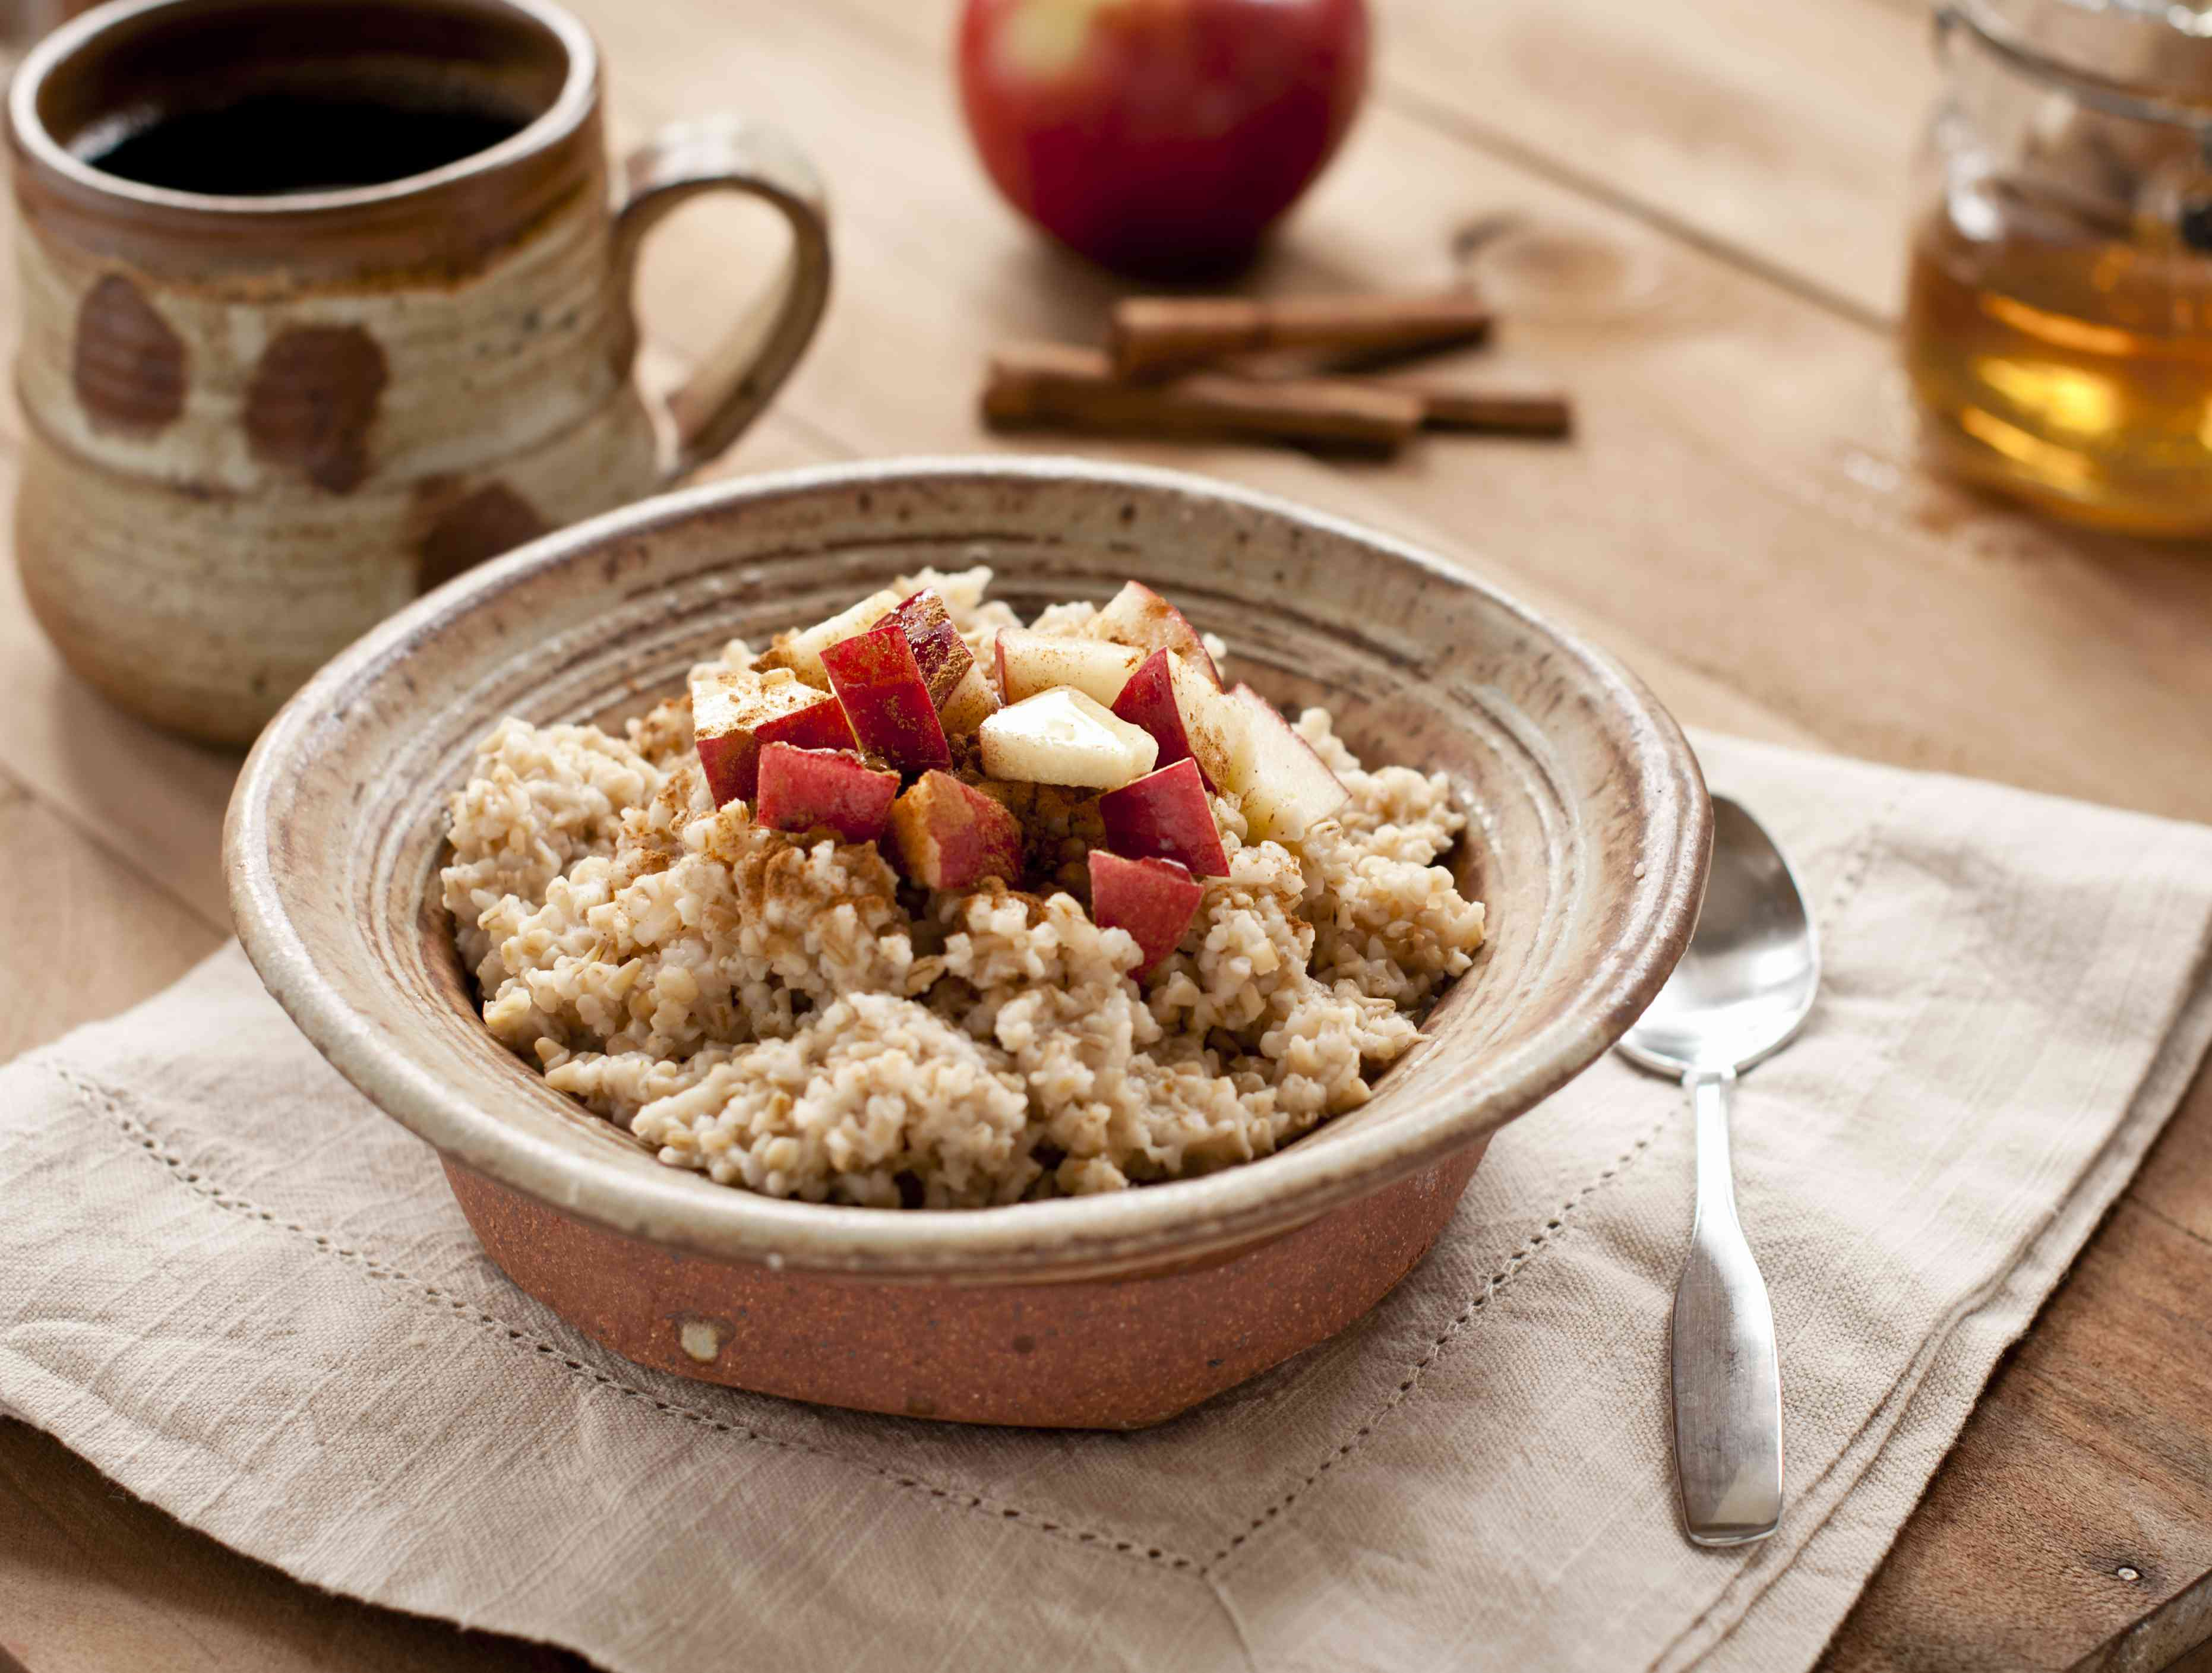 Breakfast made of oatmeal with apples, honey and cinnamon